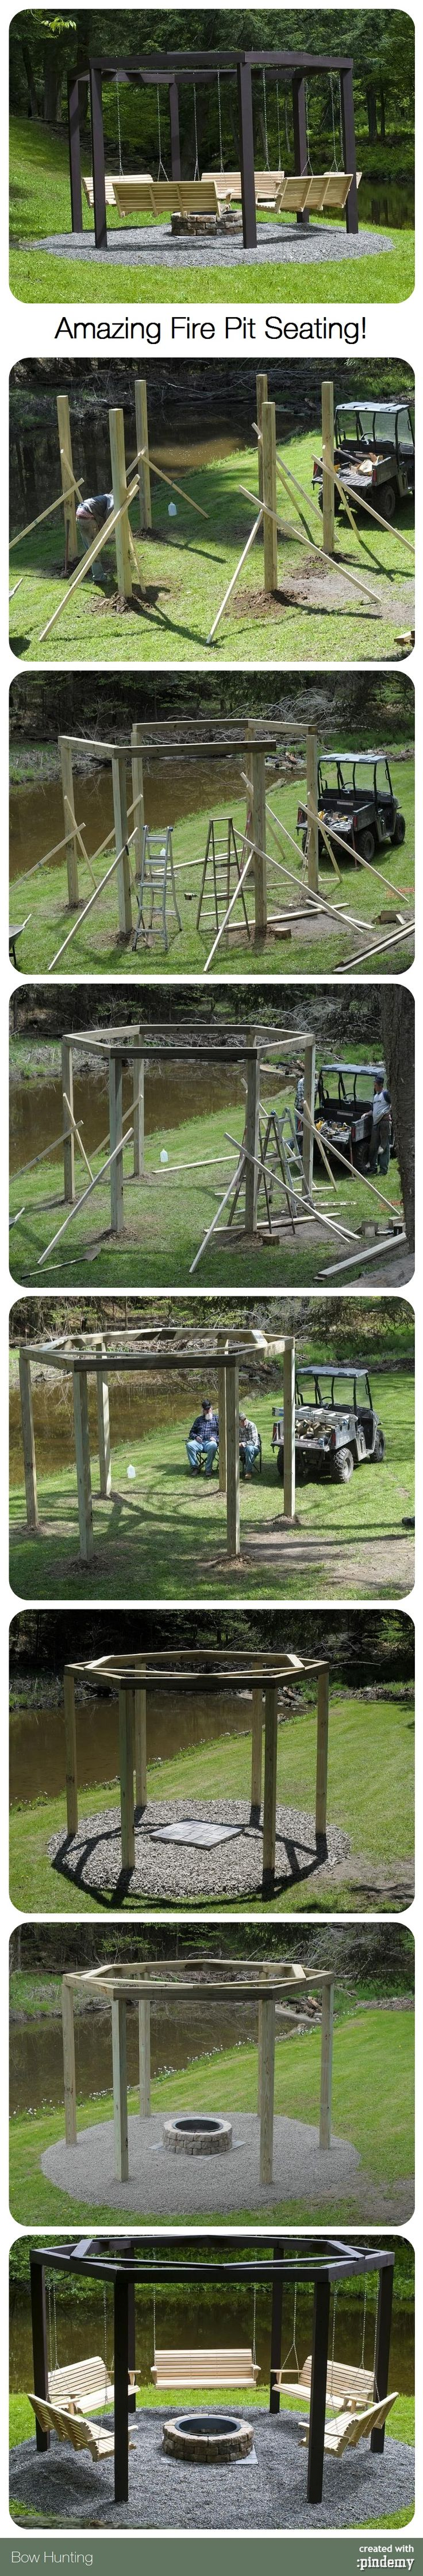 Amazing Fire Pit Seating! via pindemy.com